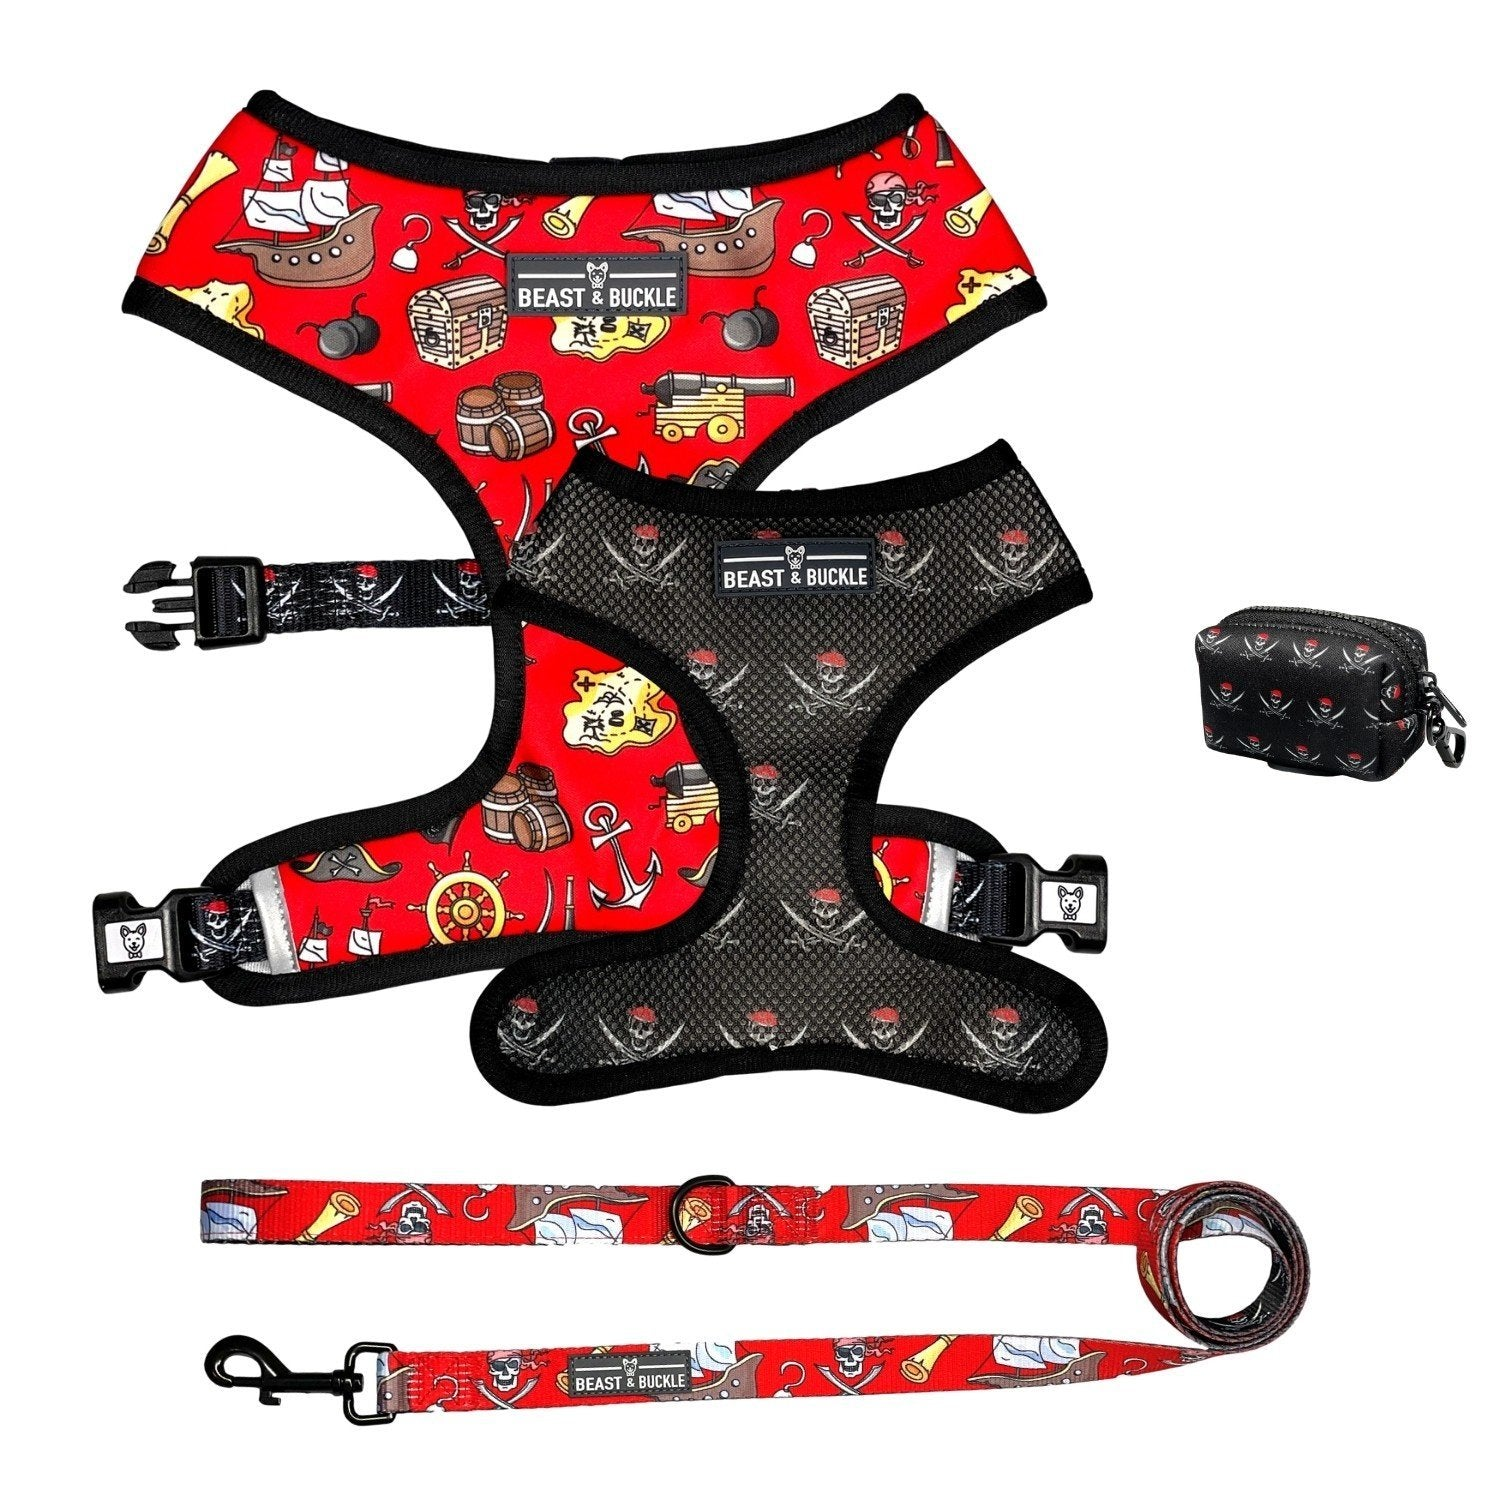 Pirate Walking Bundle - Beast & Buckle